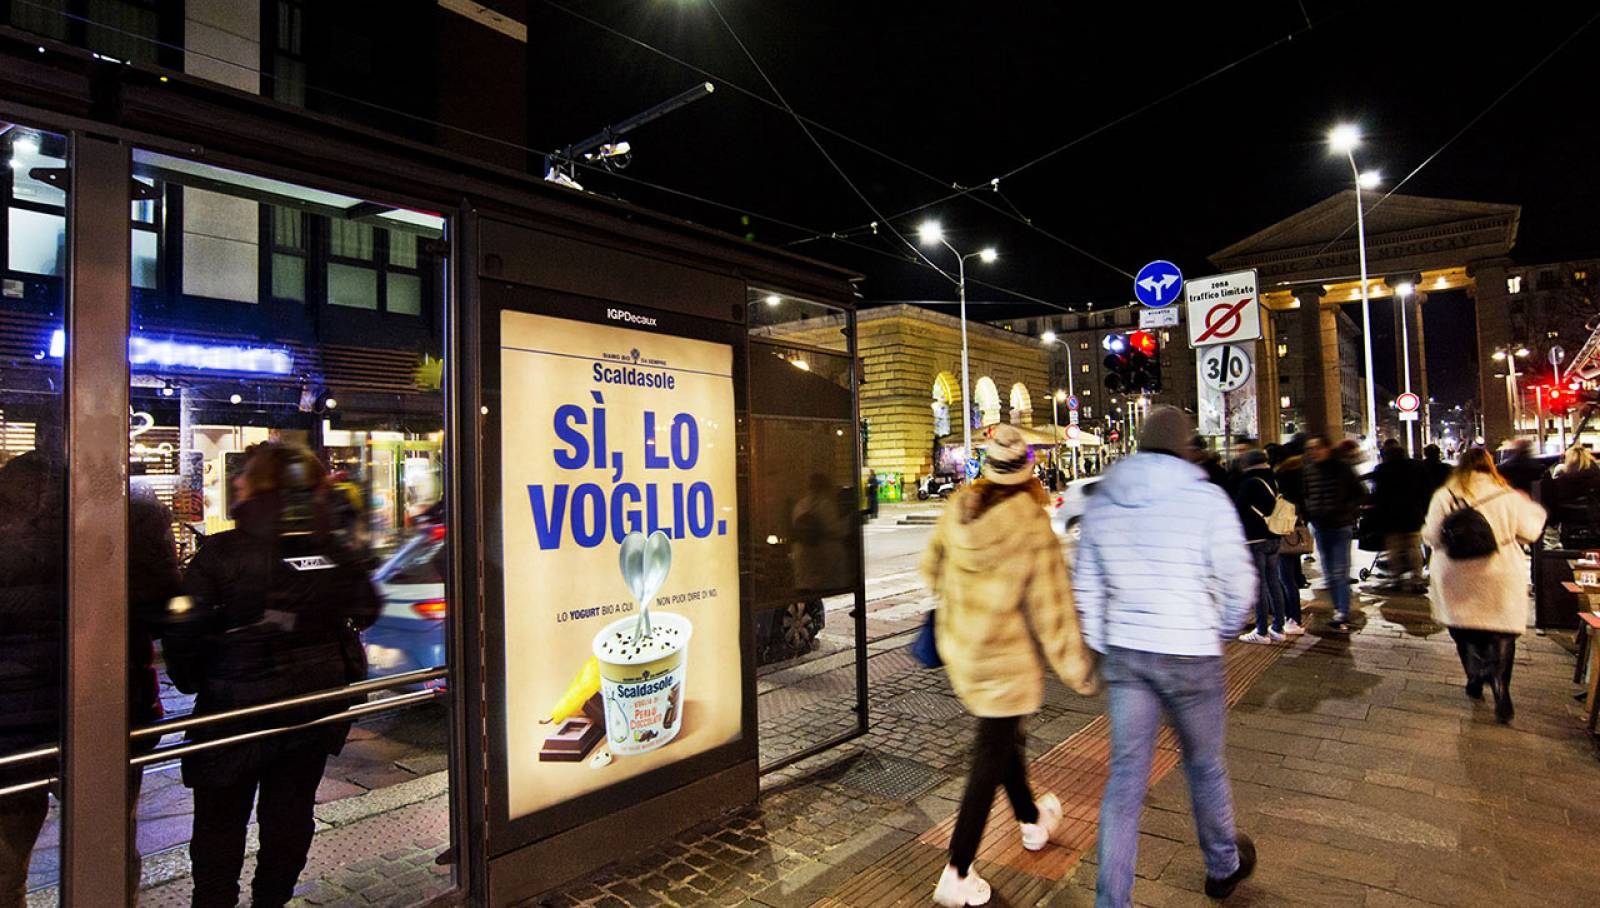 OOH advertising IGPDecaux in Milan Bus shelters for Scaldasole